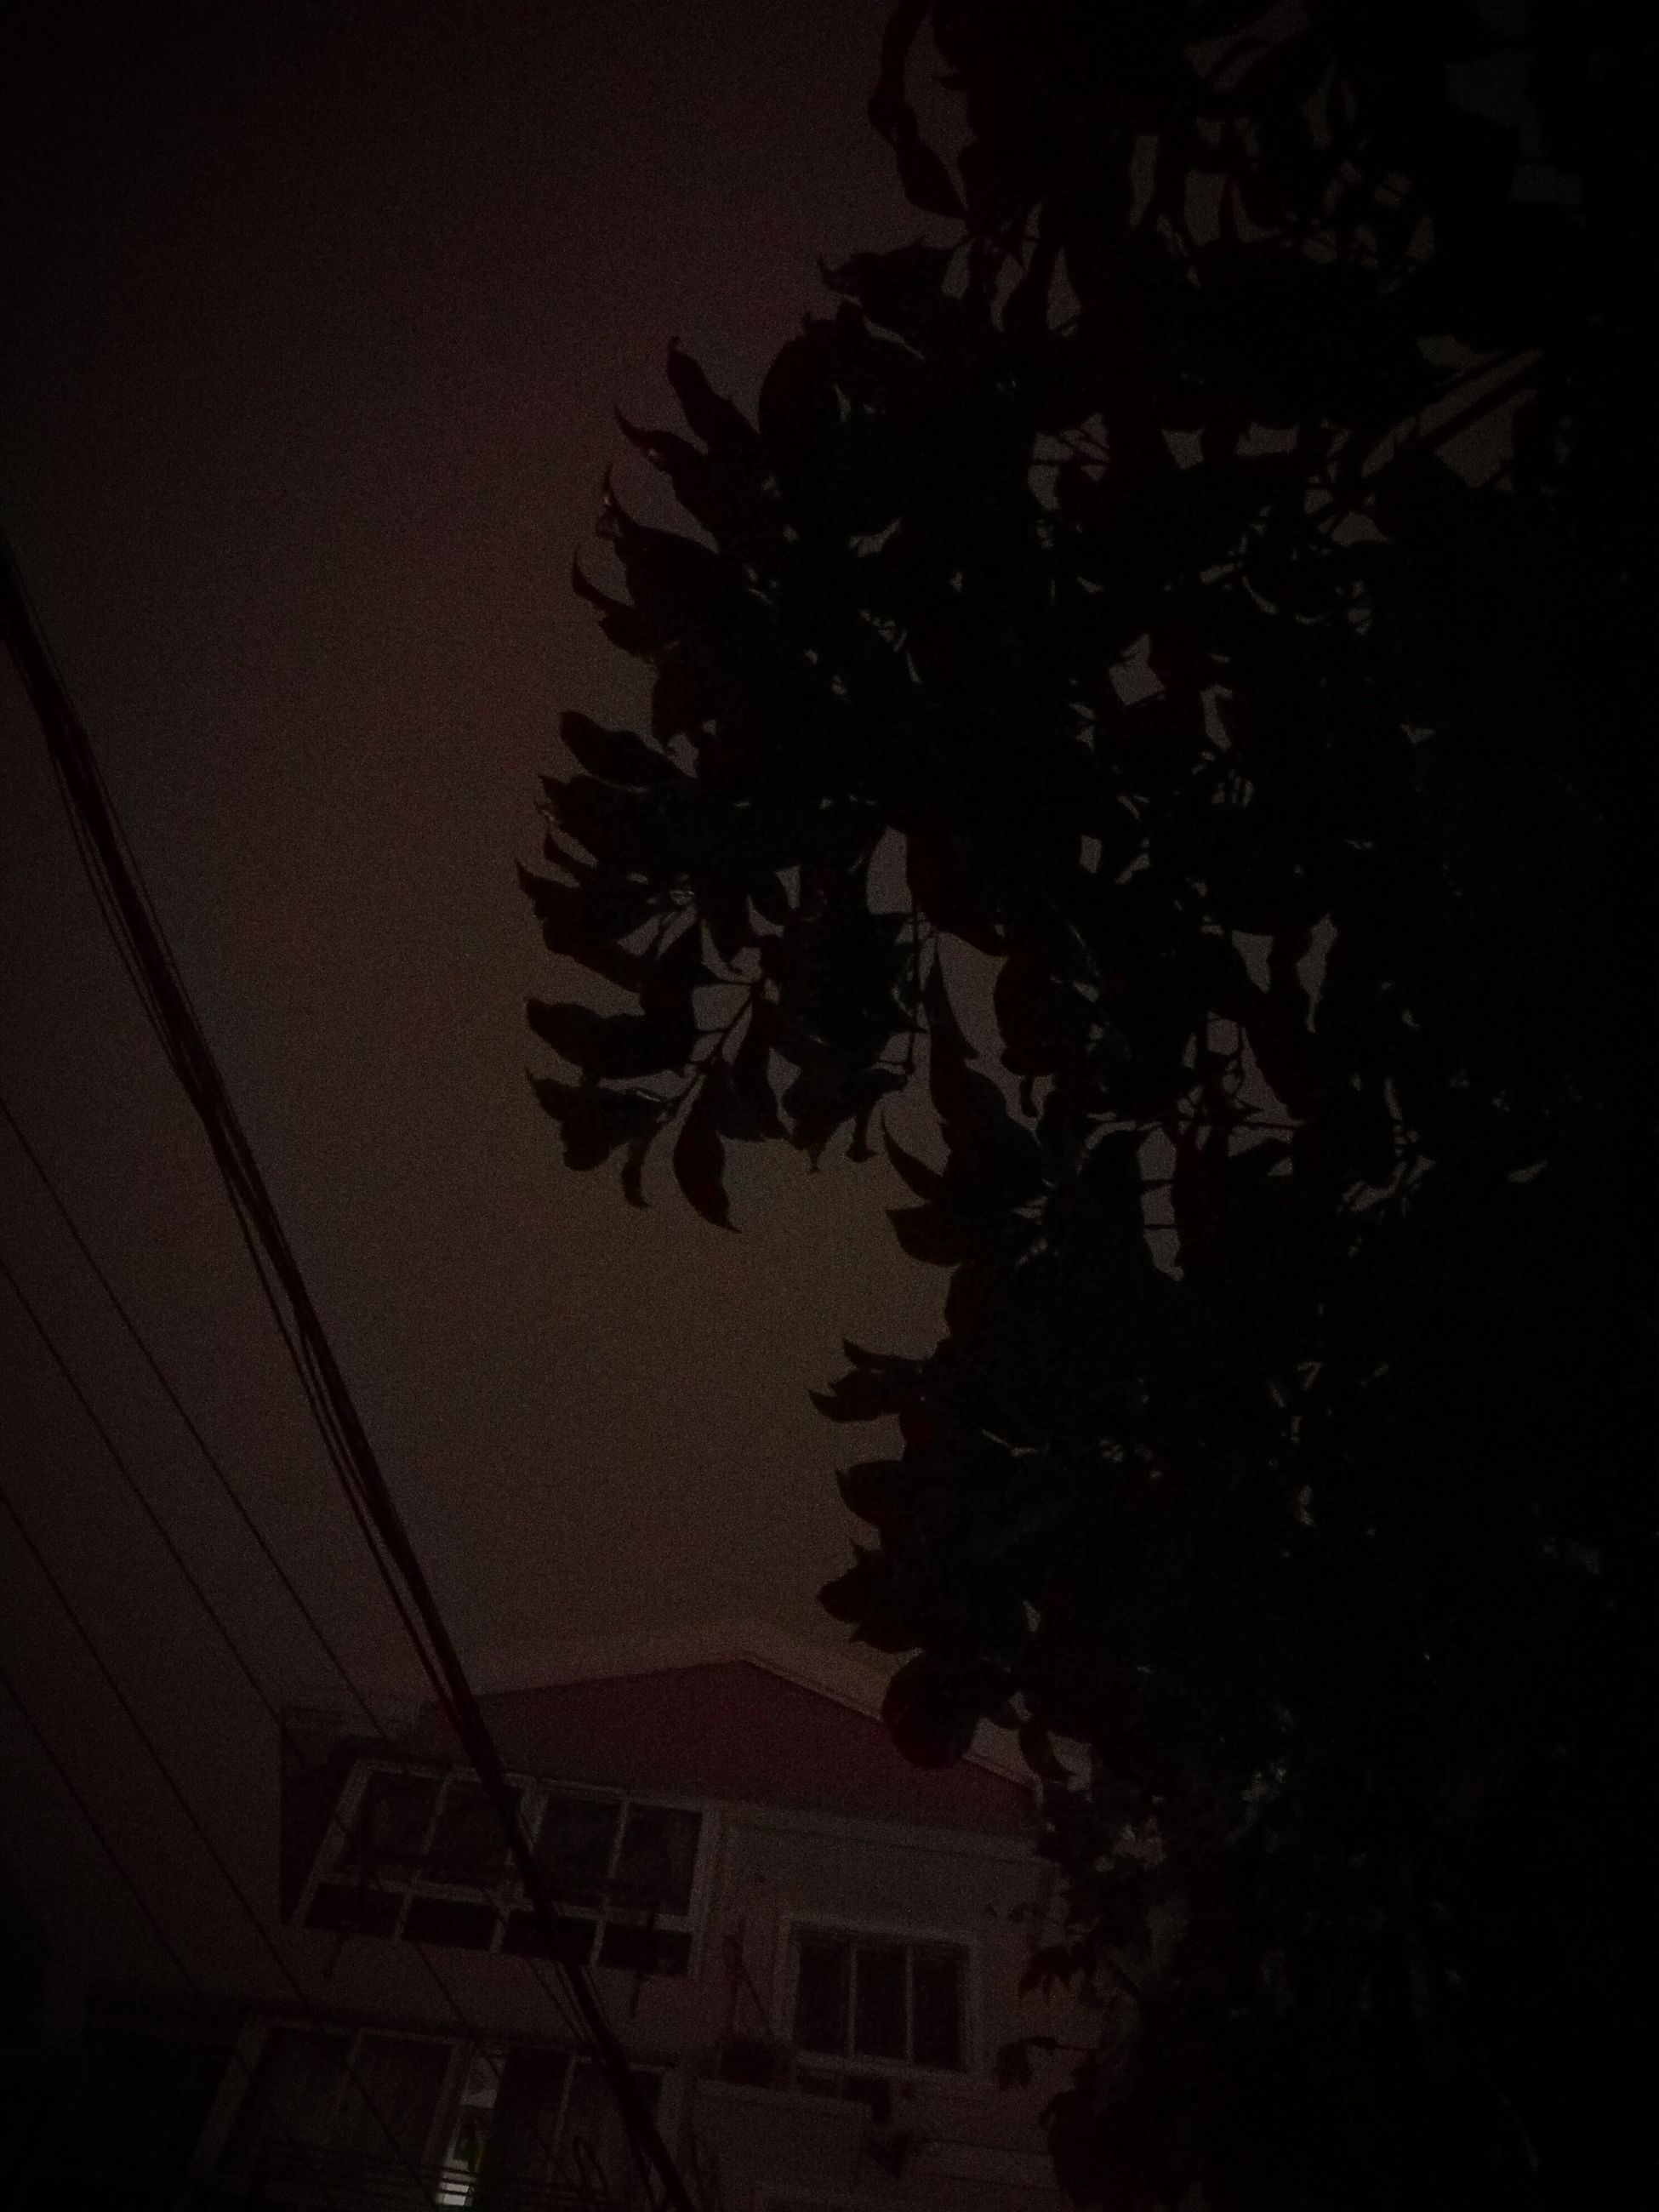 night, low angle view, growth, dark, plant, illuminated, copy space, silhouette, indoors, no people, built structure, nature, leaf, wall - building feature, architecture, light - natural phenomenon, tree, lighting equipment, shadow